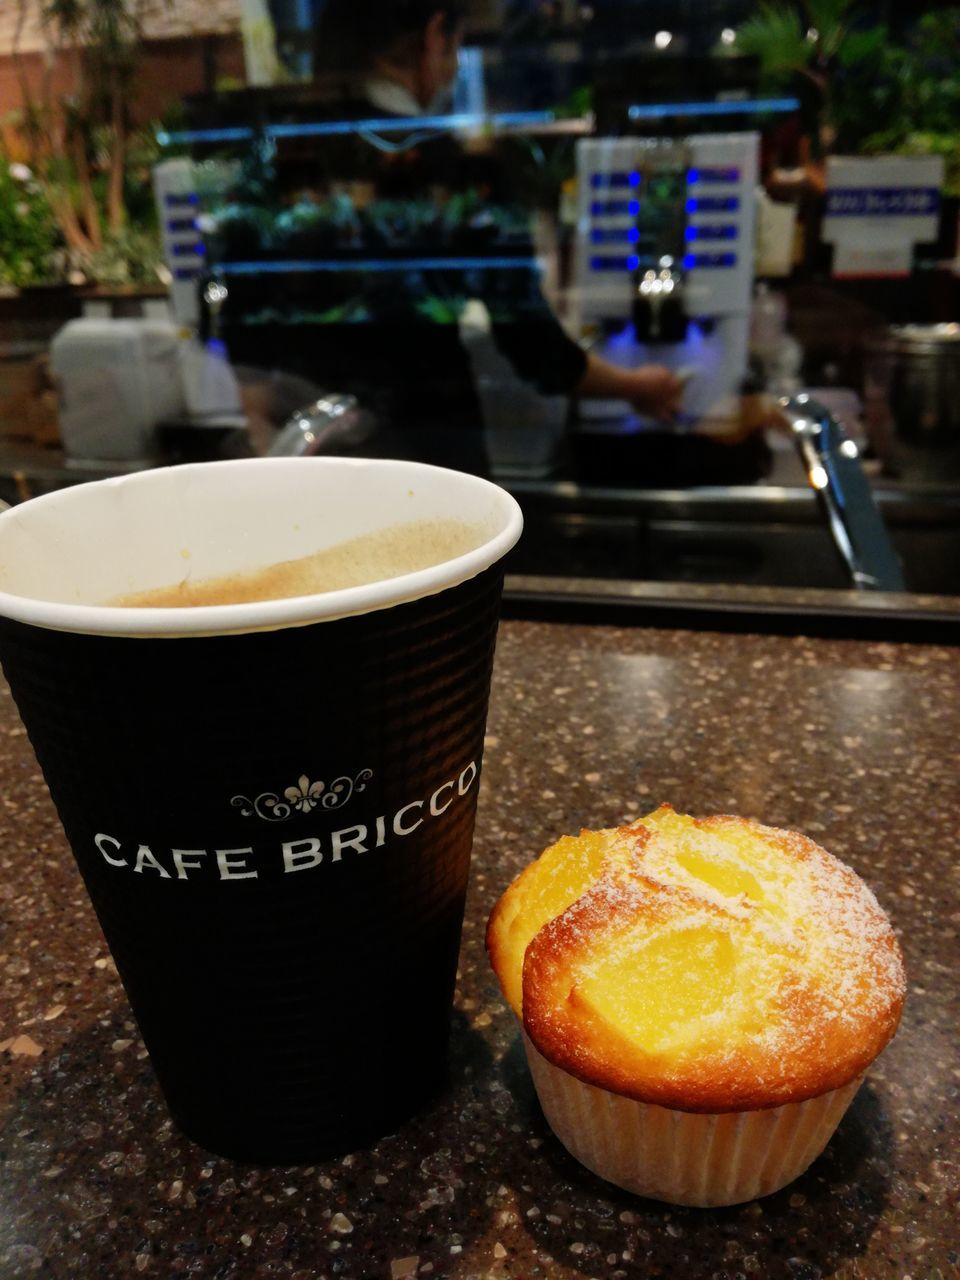 food and drink, table, freshness, drink, focus on foreground, refreshment, food, coffee - drink, still life, coffee cup, indoors, indulgence, temptation, sweet food, no people, close-up, dessert, ready-to-eat, day